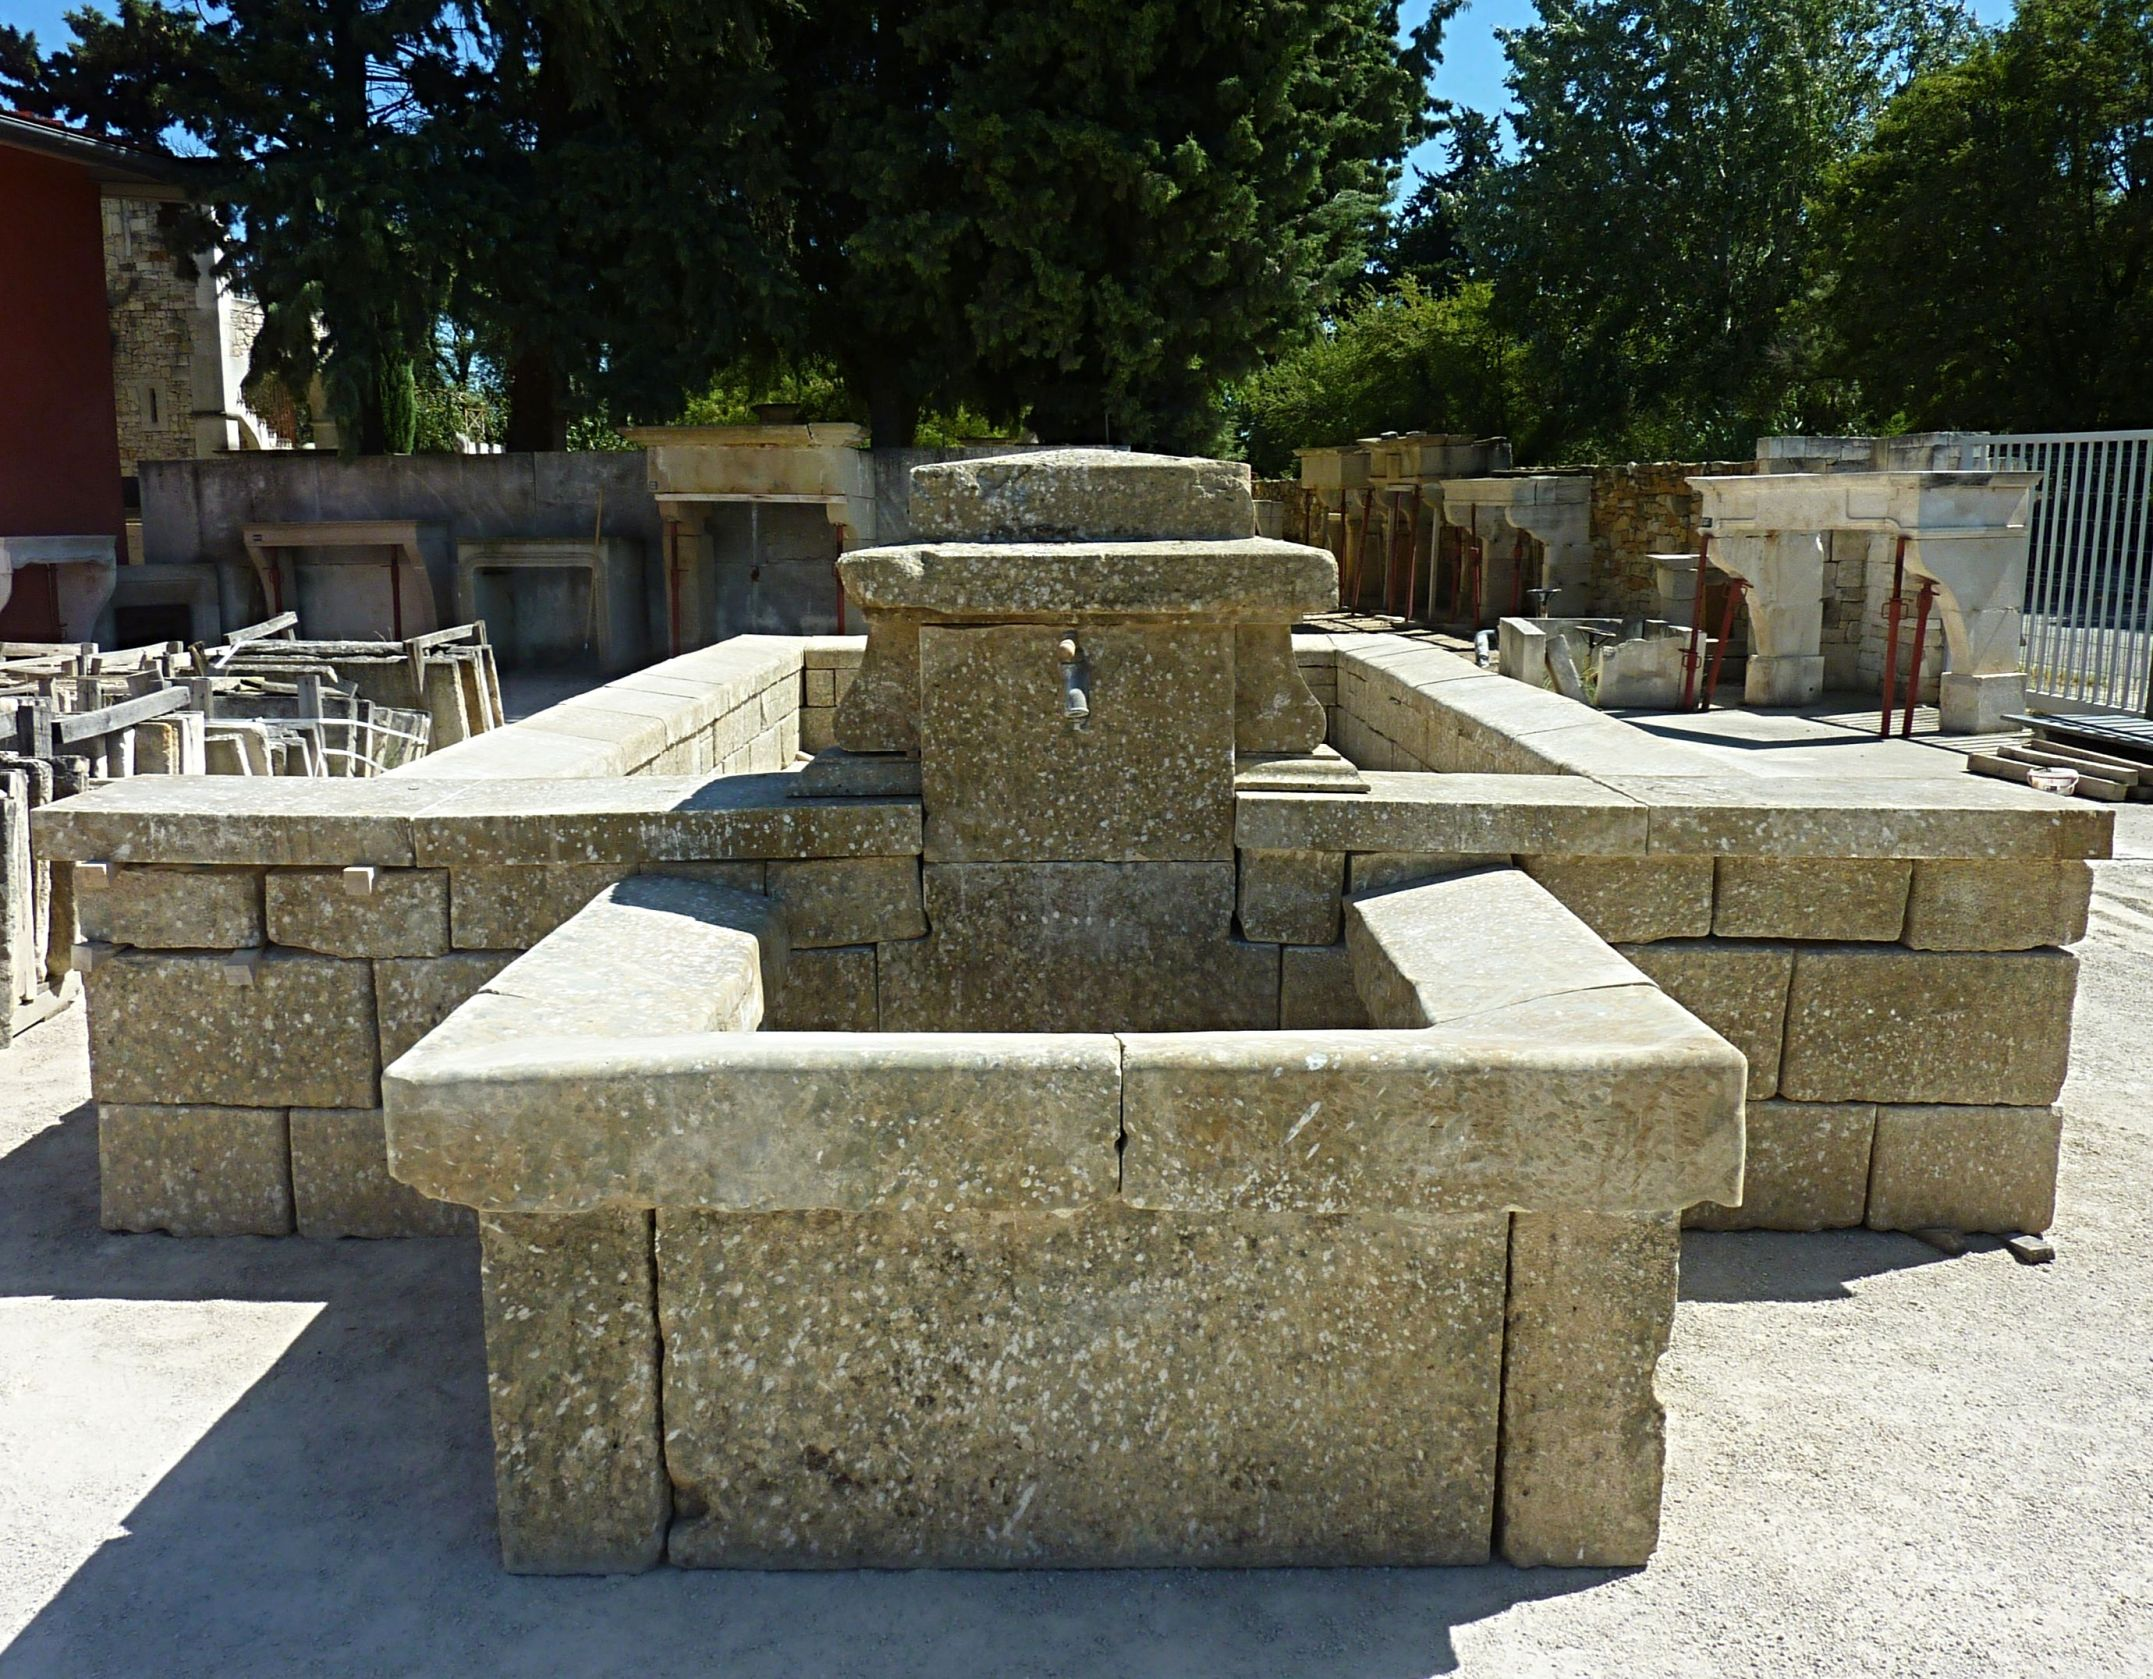 Elegant old wash house of Provence | A large pool in natural stone for sale at Les Matériaux Anciens Alain Bidal